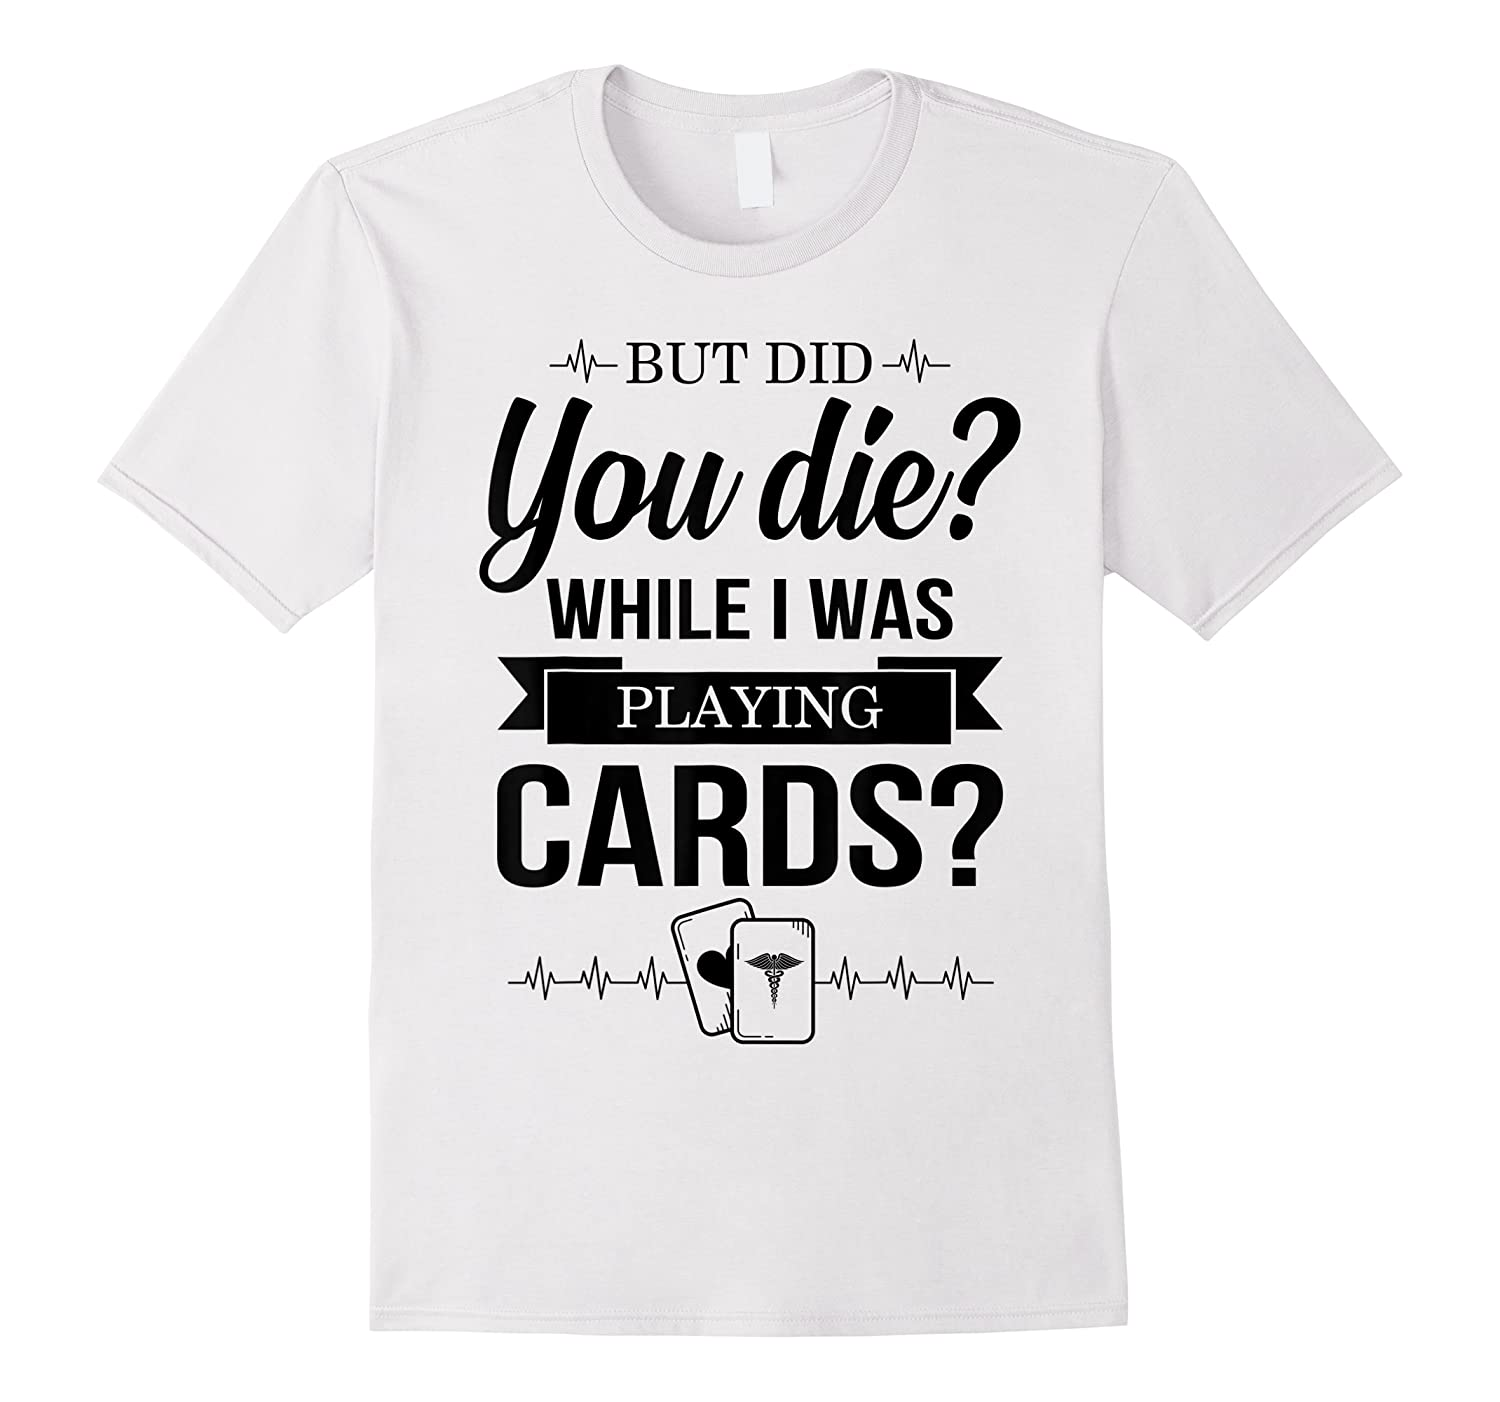 But Did You Die While I Was Playing Cards Tshirt For Nurse